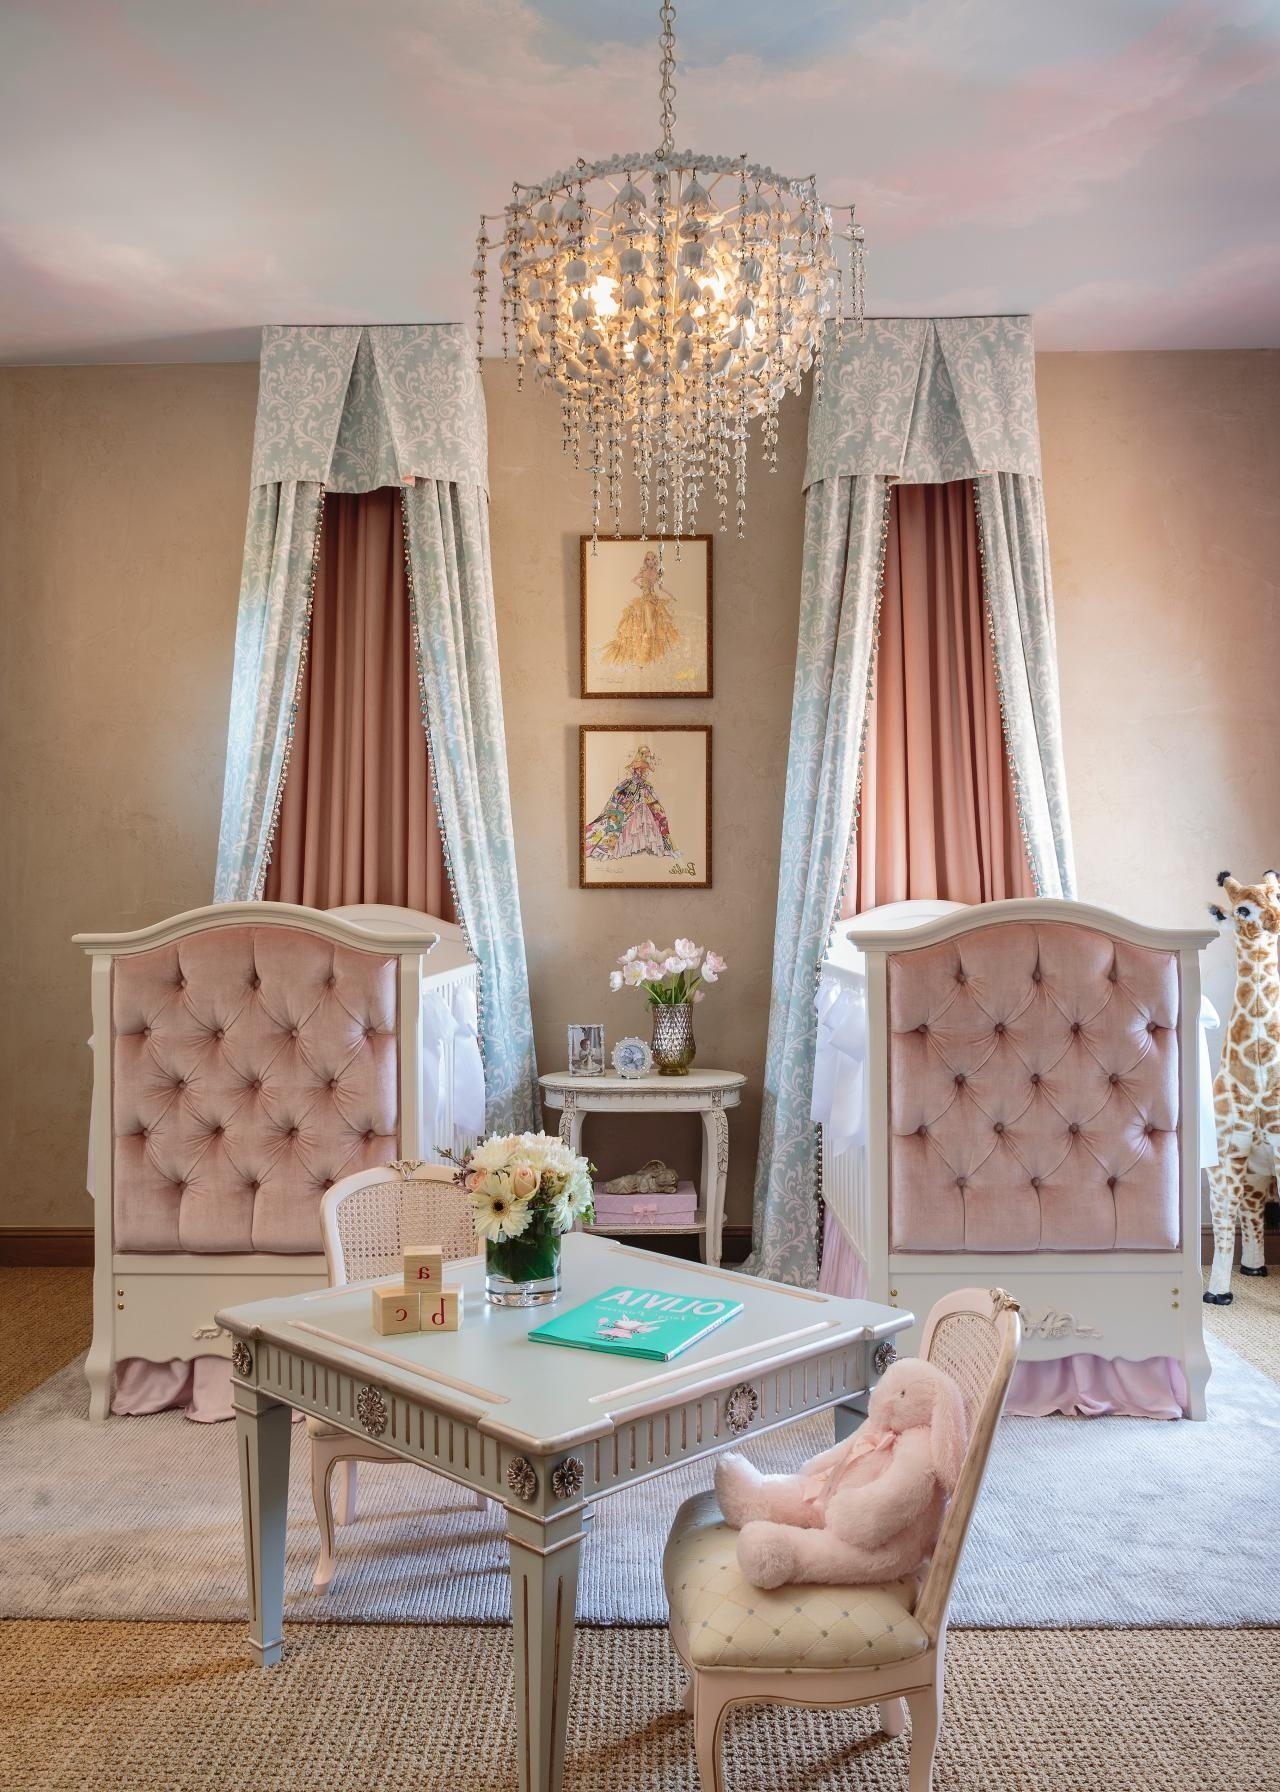 Favorite Chandeliers For Baby Girl Room Pertaining To Chandeliers Design : Magnificent Mini Chrome Crystal Chandelier For (View 11 of 15)